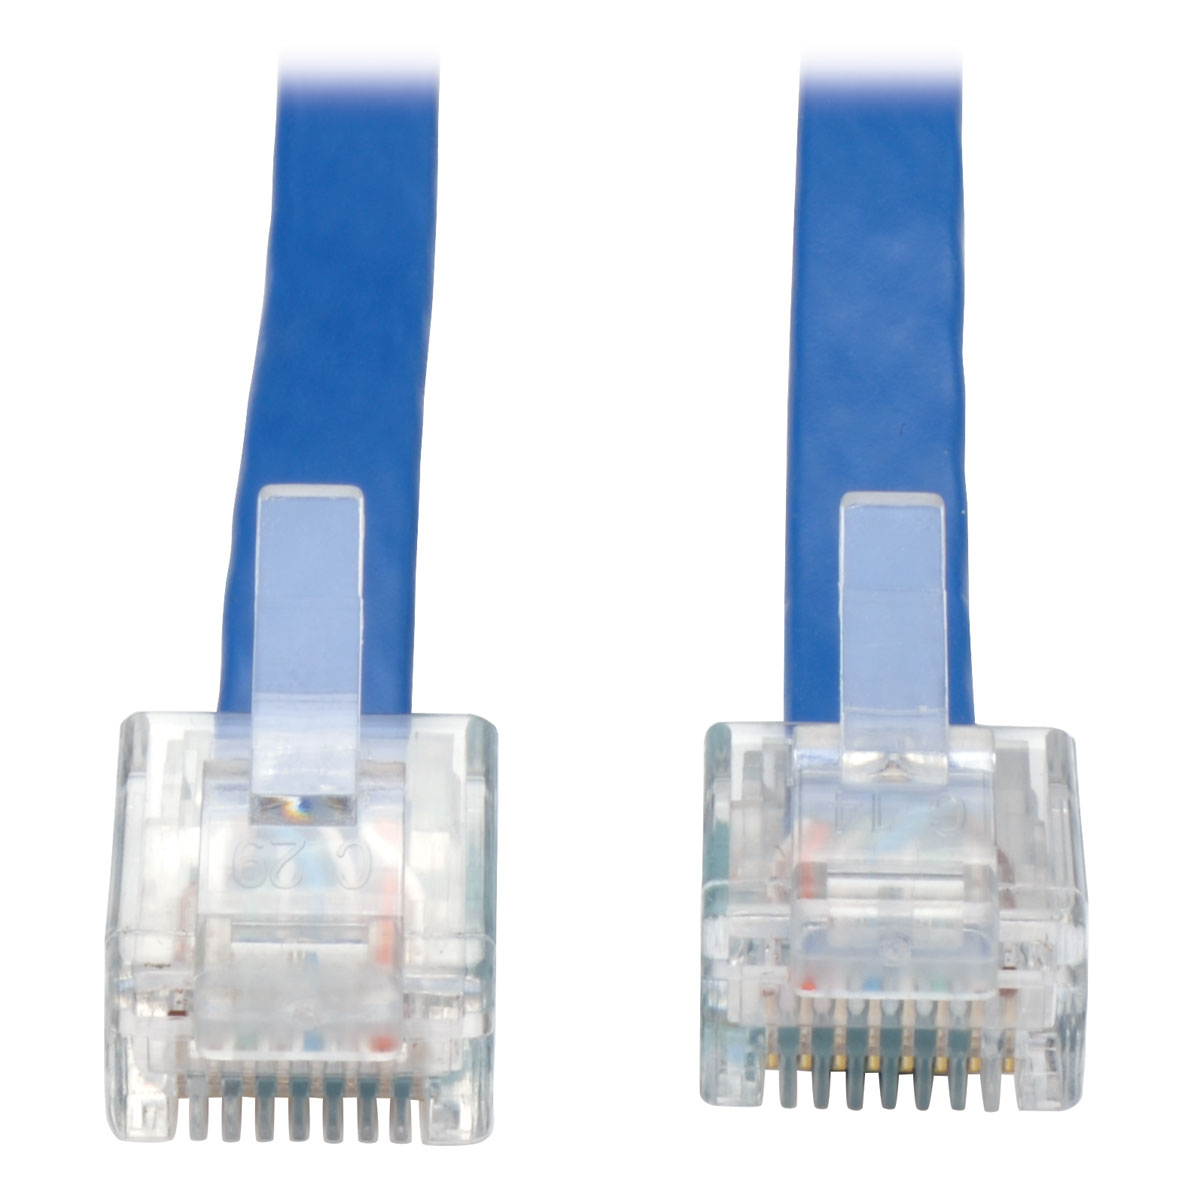 Tripp Lite Cisco Console Replacement Rollover Cable Rj45 32awg M 6 6ft Network Ft Blue Cat5e Ethernet Patch Snagless Molded Boot 15 Foot Part Slide 1 Of 2show Larger Image